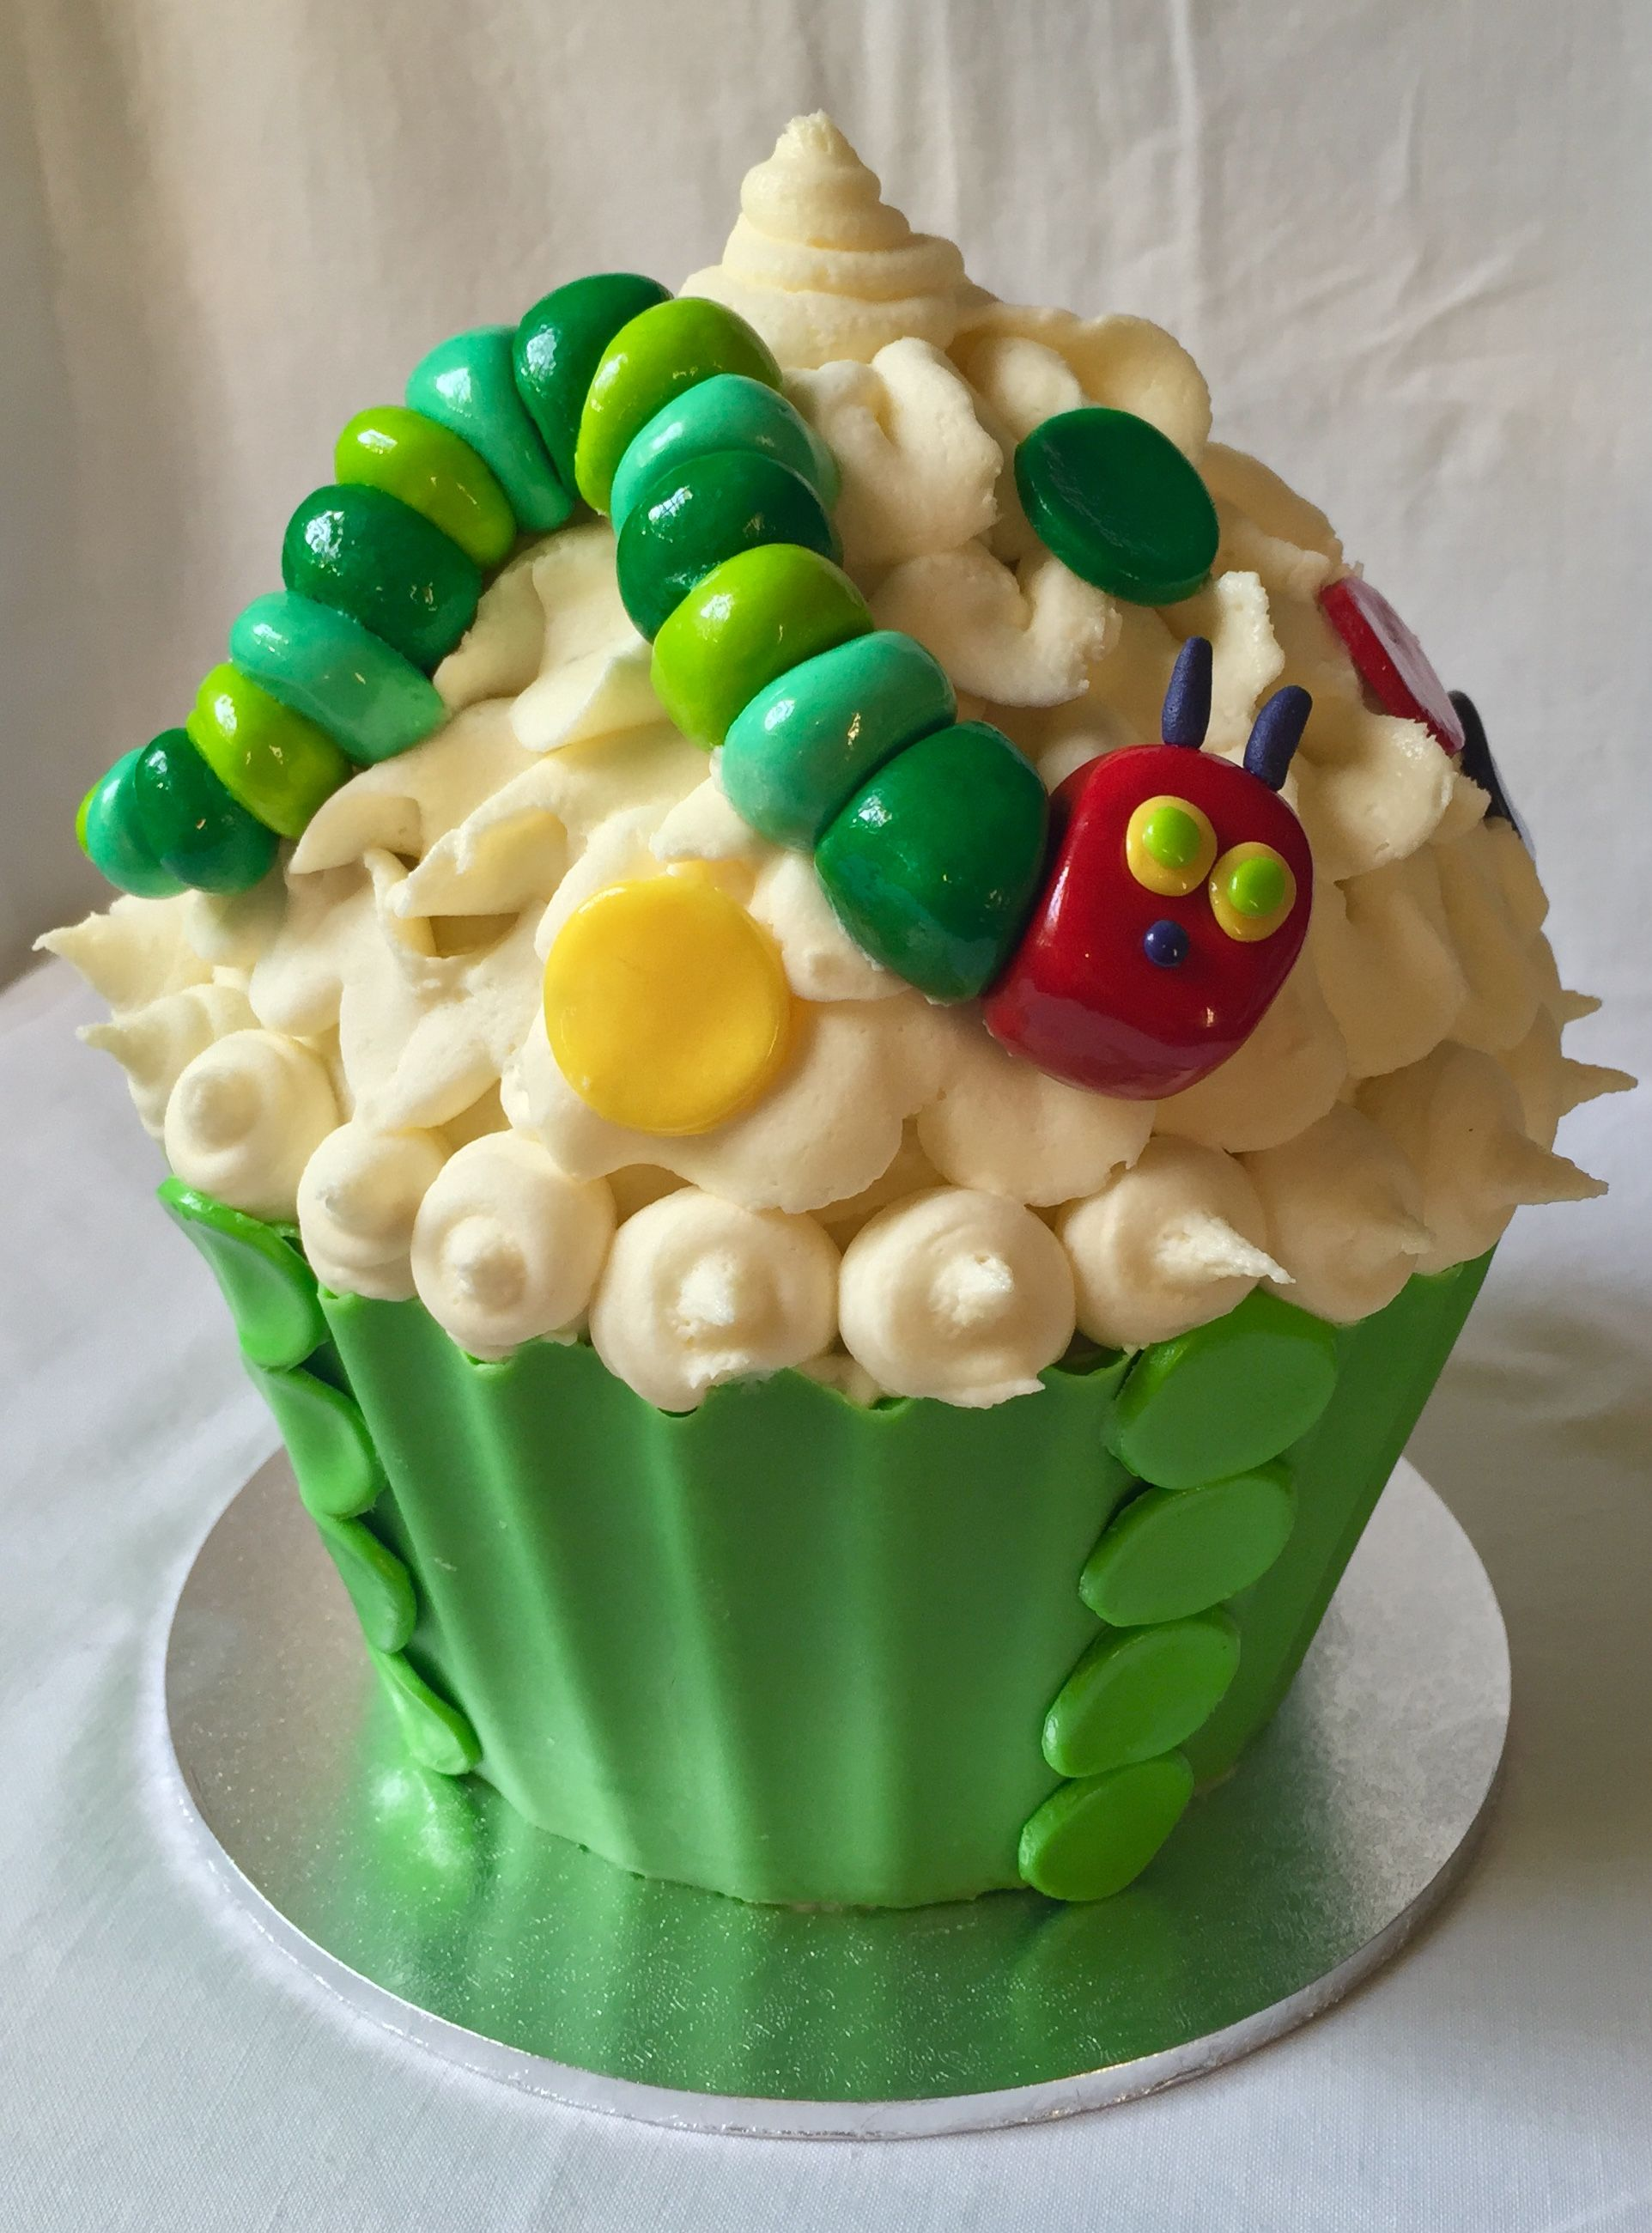 Giant Cupcake Cake The Hungry Caterpillar Theme